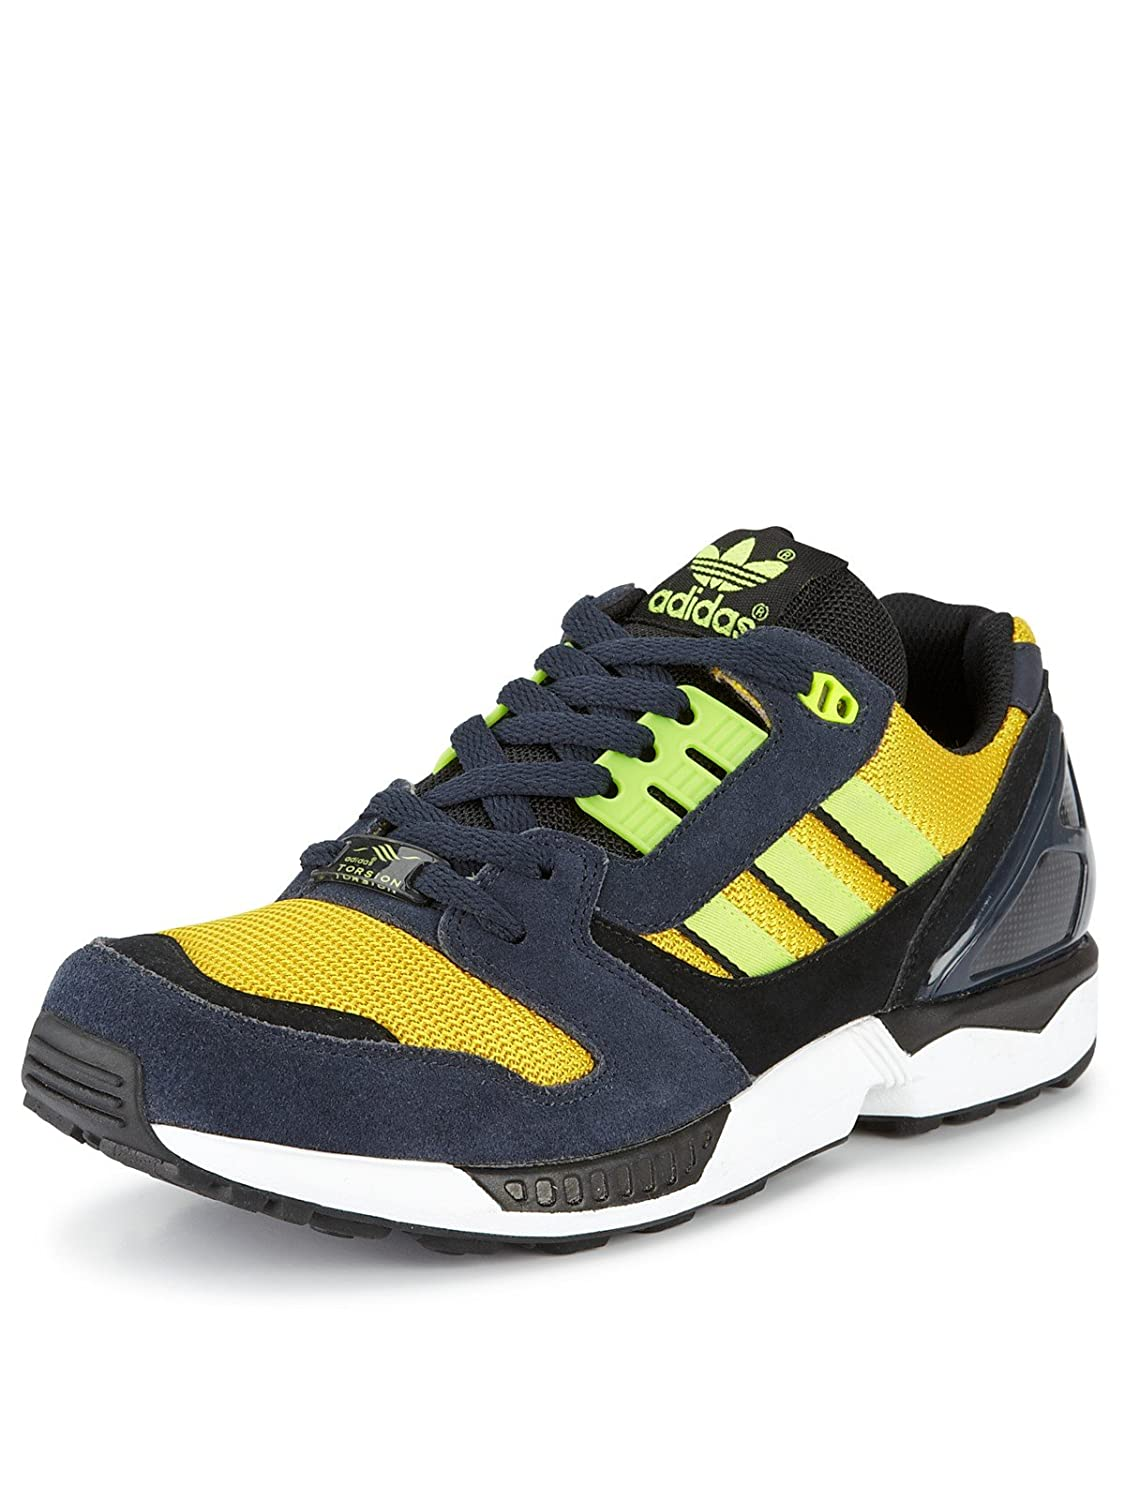 d9d8d97326c83 Adidas Originals Zx 8000 Navy Yellow Running Shoes Classic Men D65460  (8.5)  Amazon.ca  Shoes   Handbags